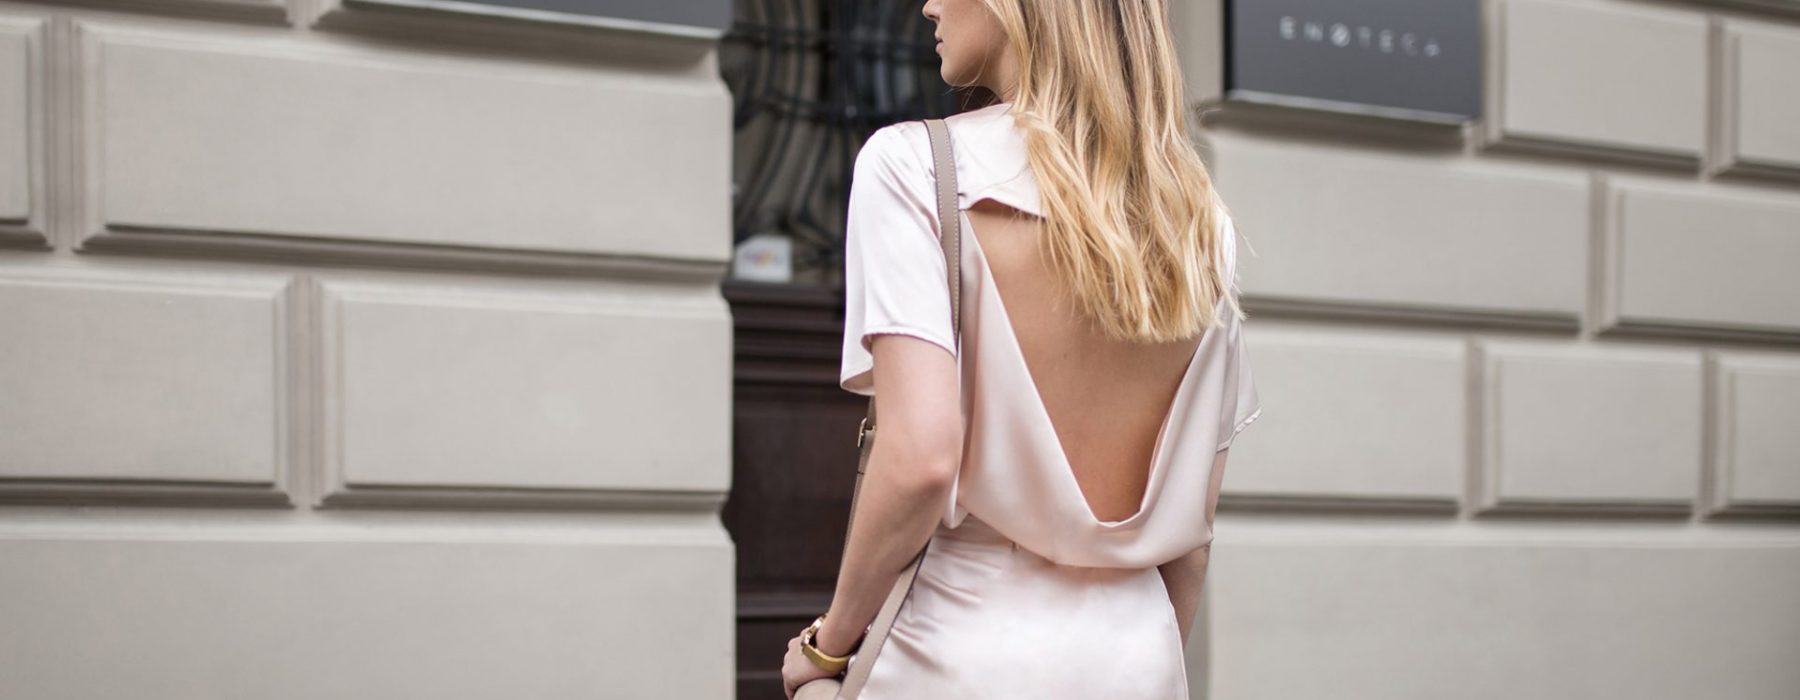 How to wear the cocktail dress